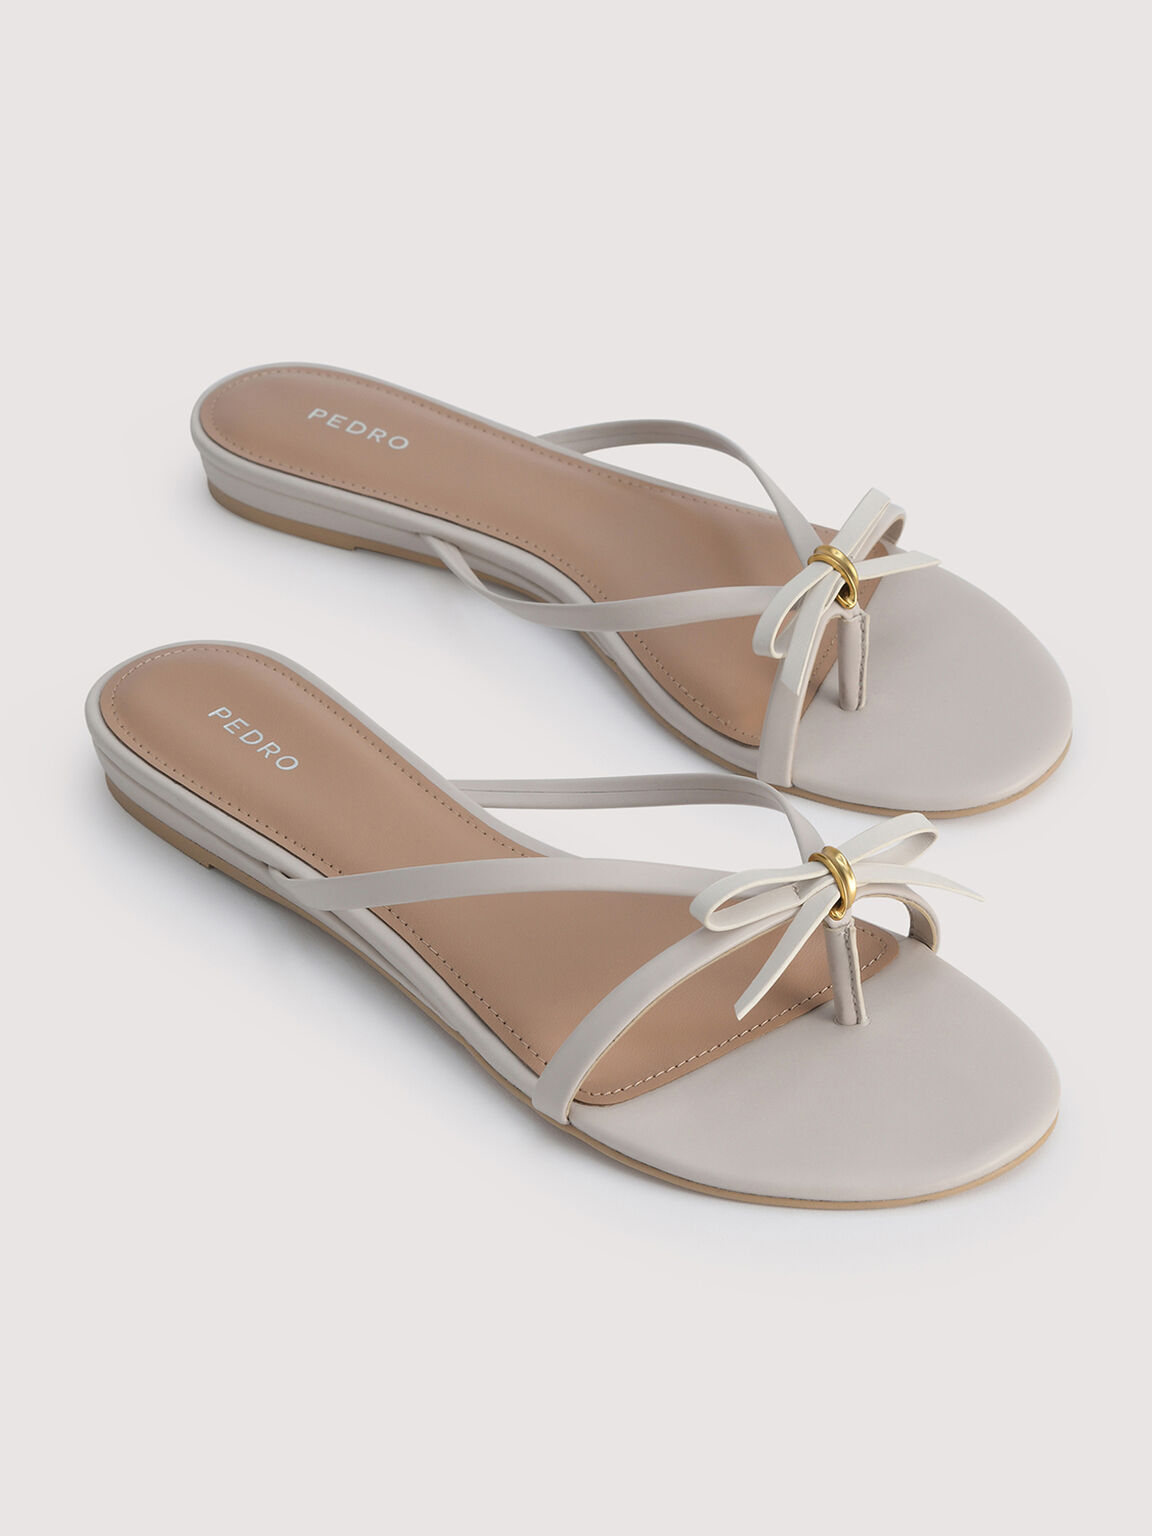 Strappy Thong Sandals, Cream, hi-res